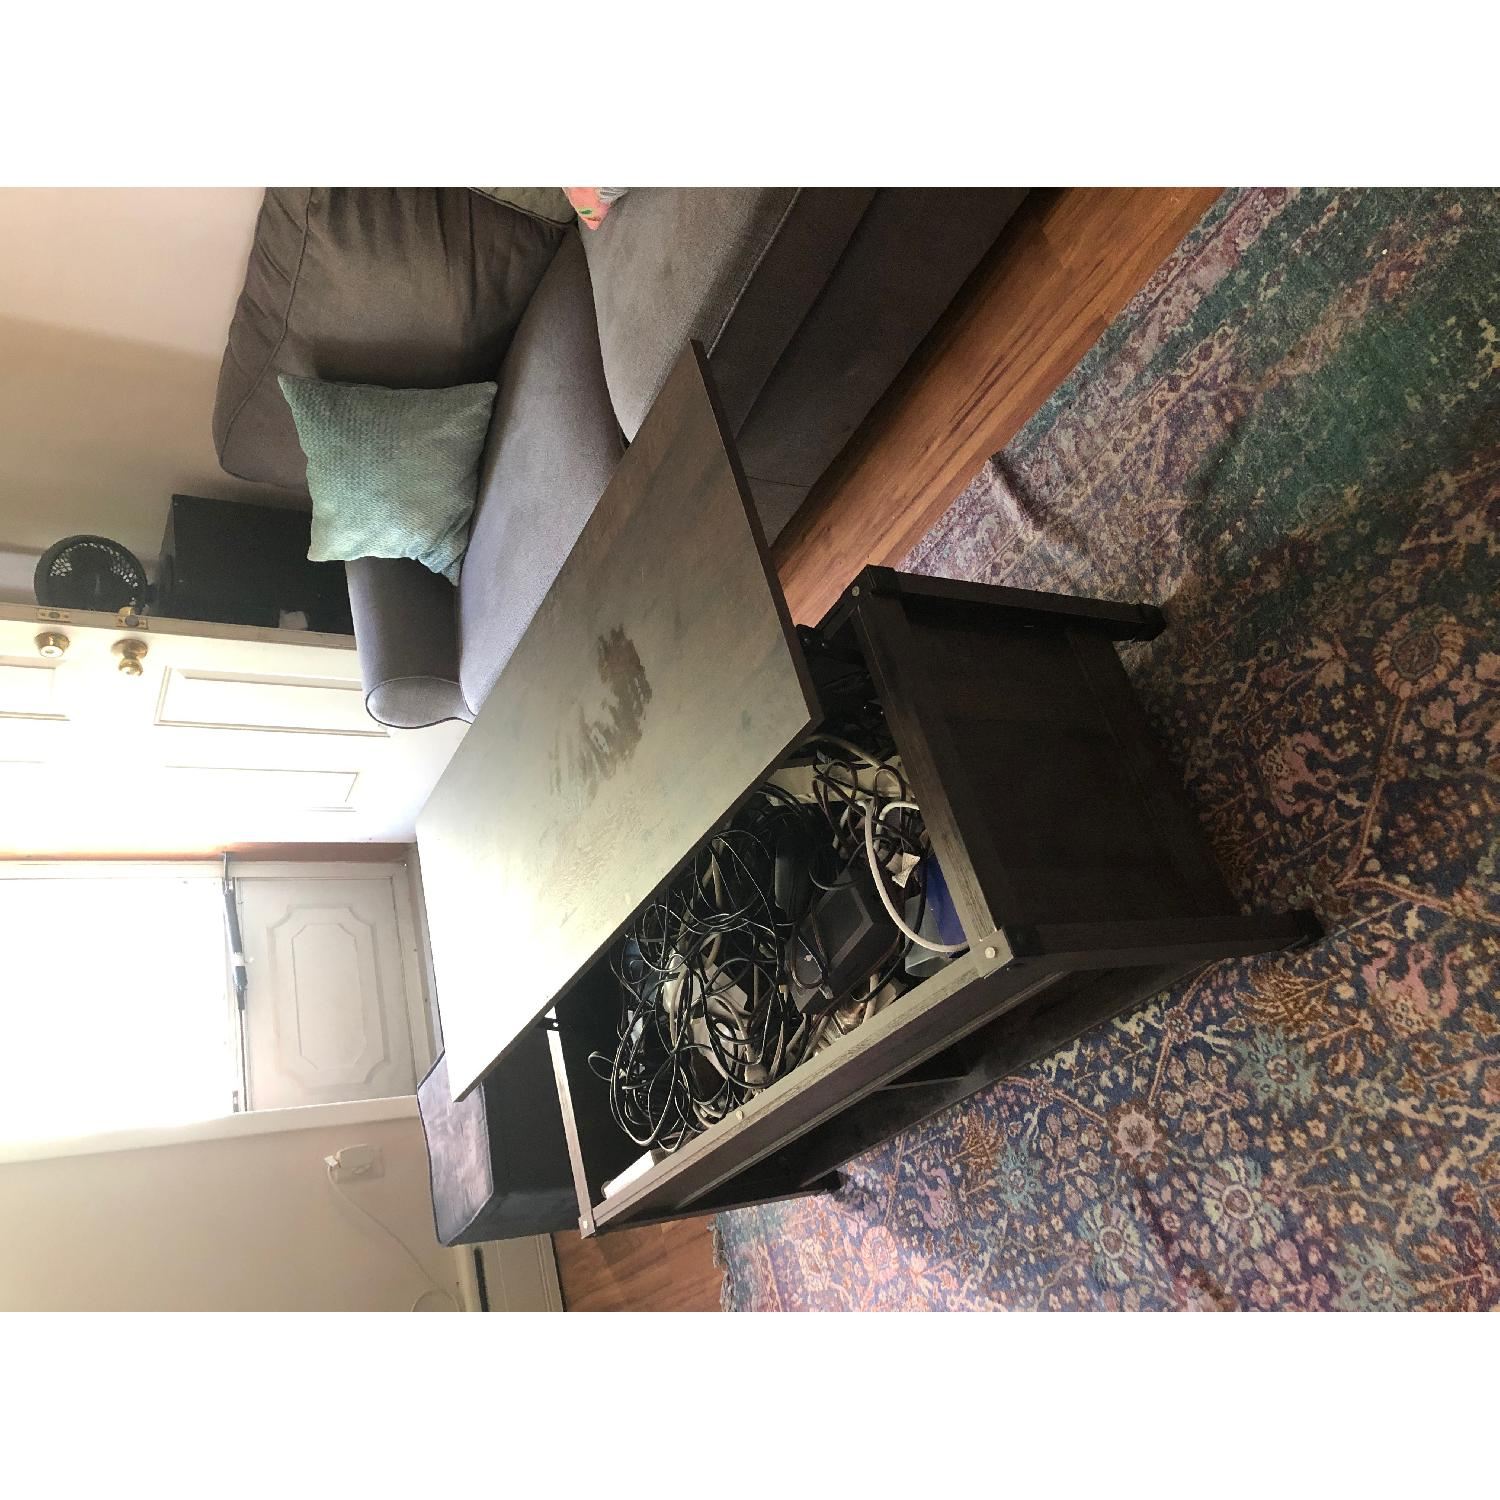 Sauder Carson Forge Lift Top Coffee Table - image-5